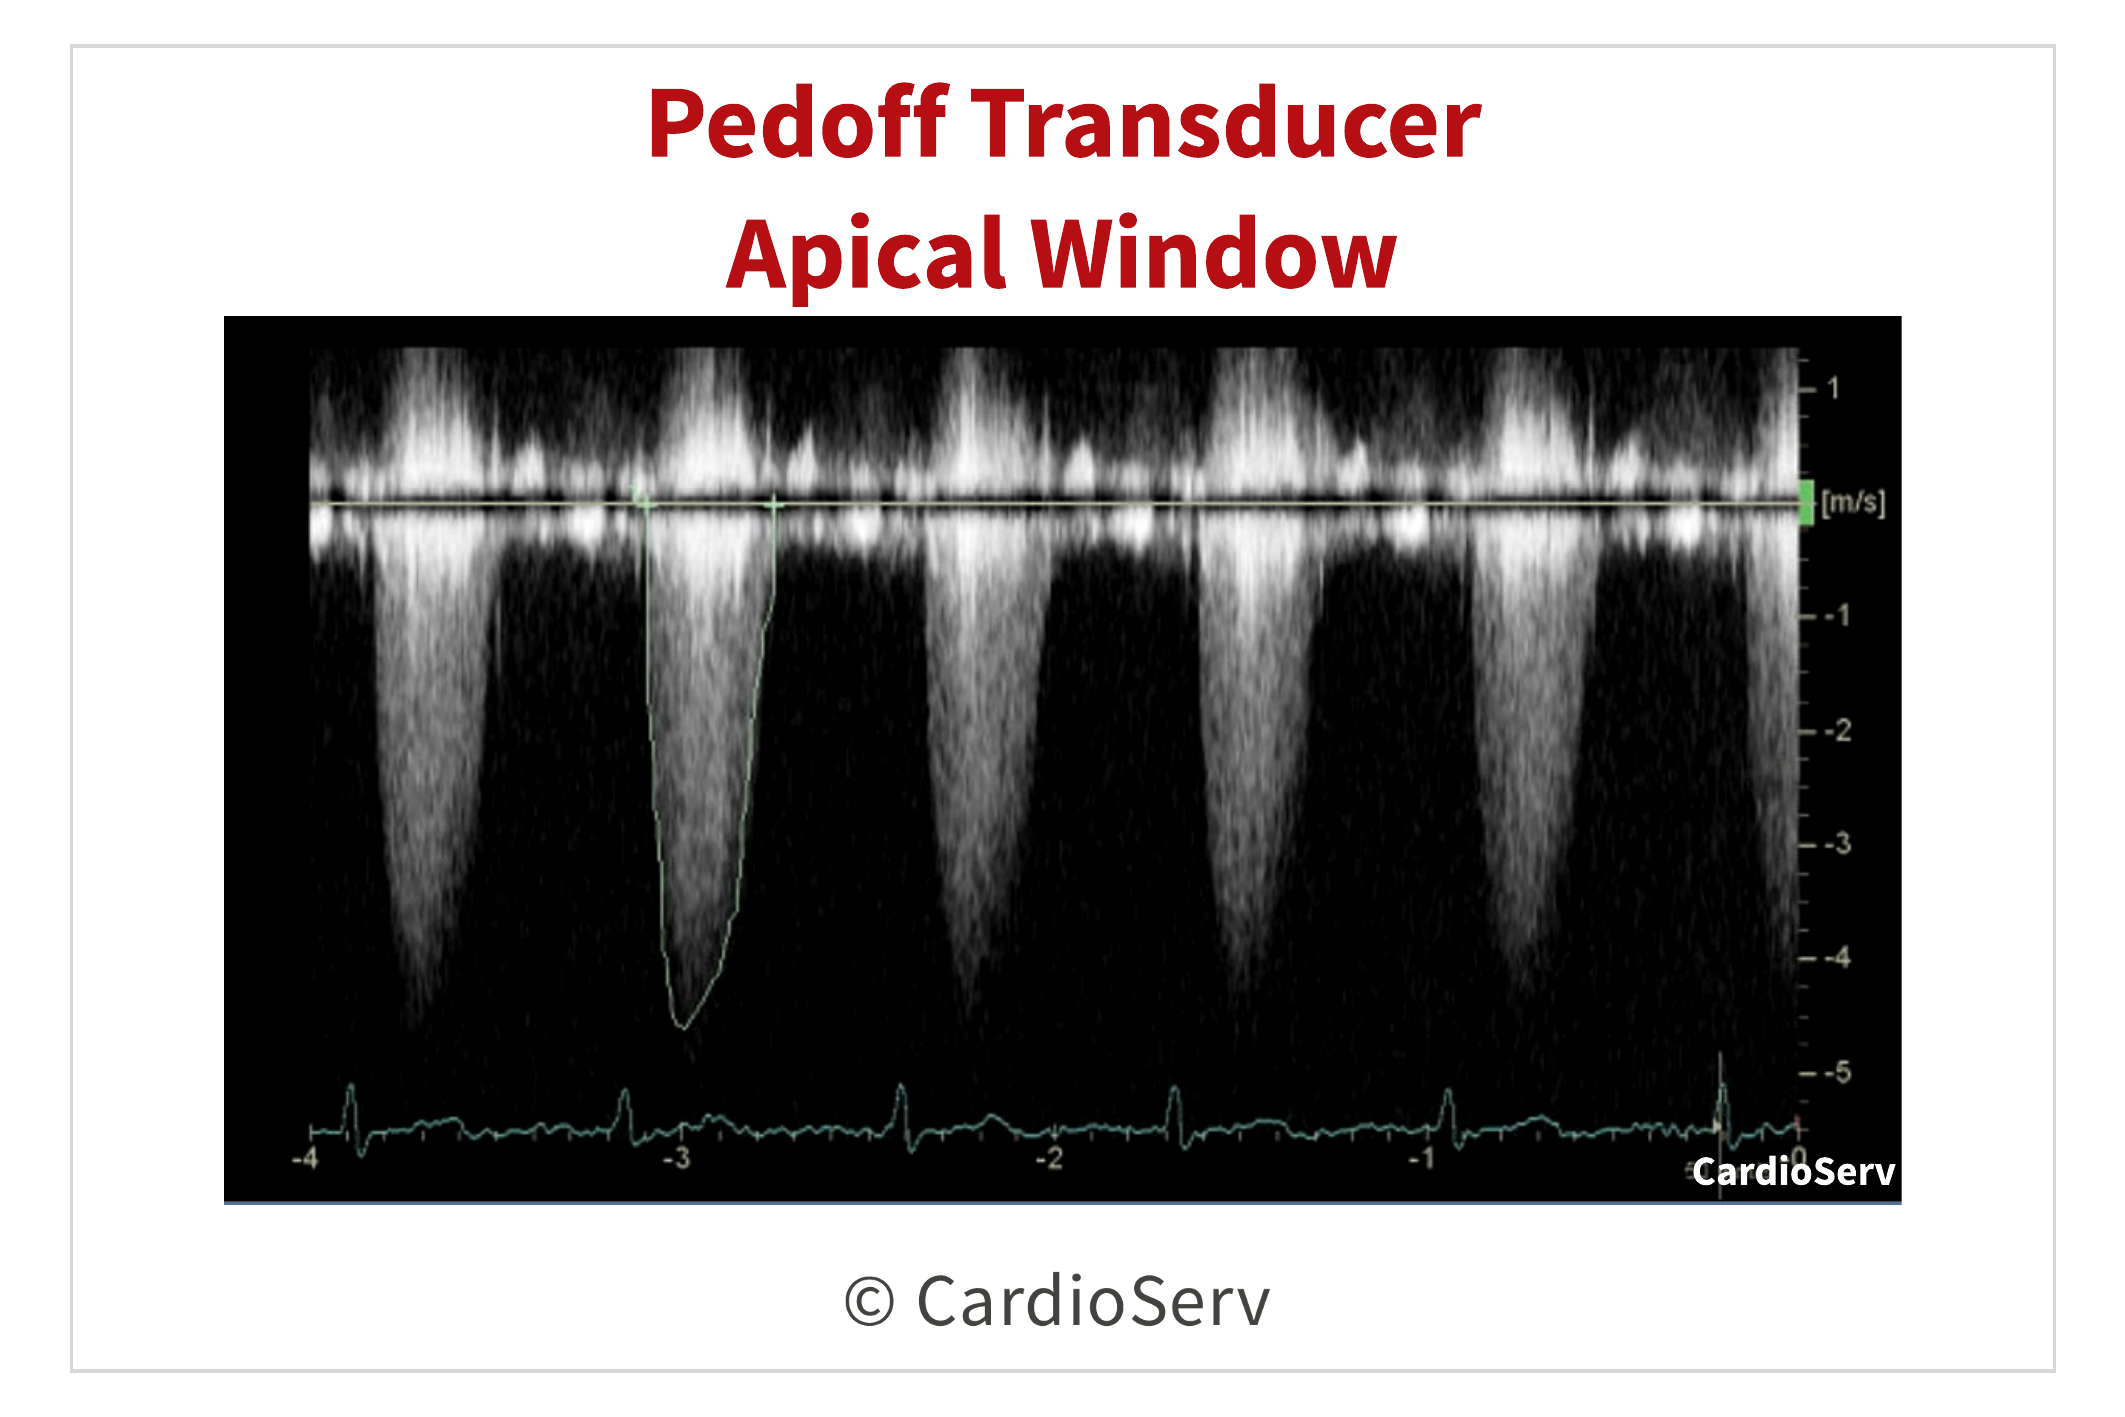 Pedoff Transducer Aortic Stenosis CW Doppler